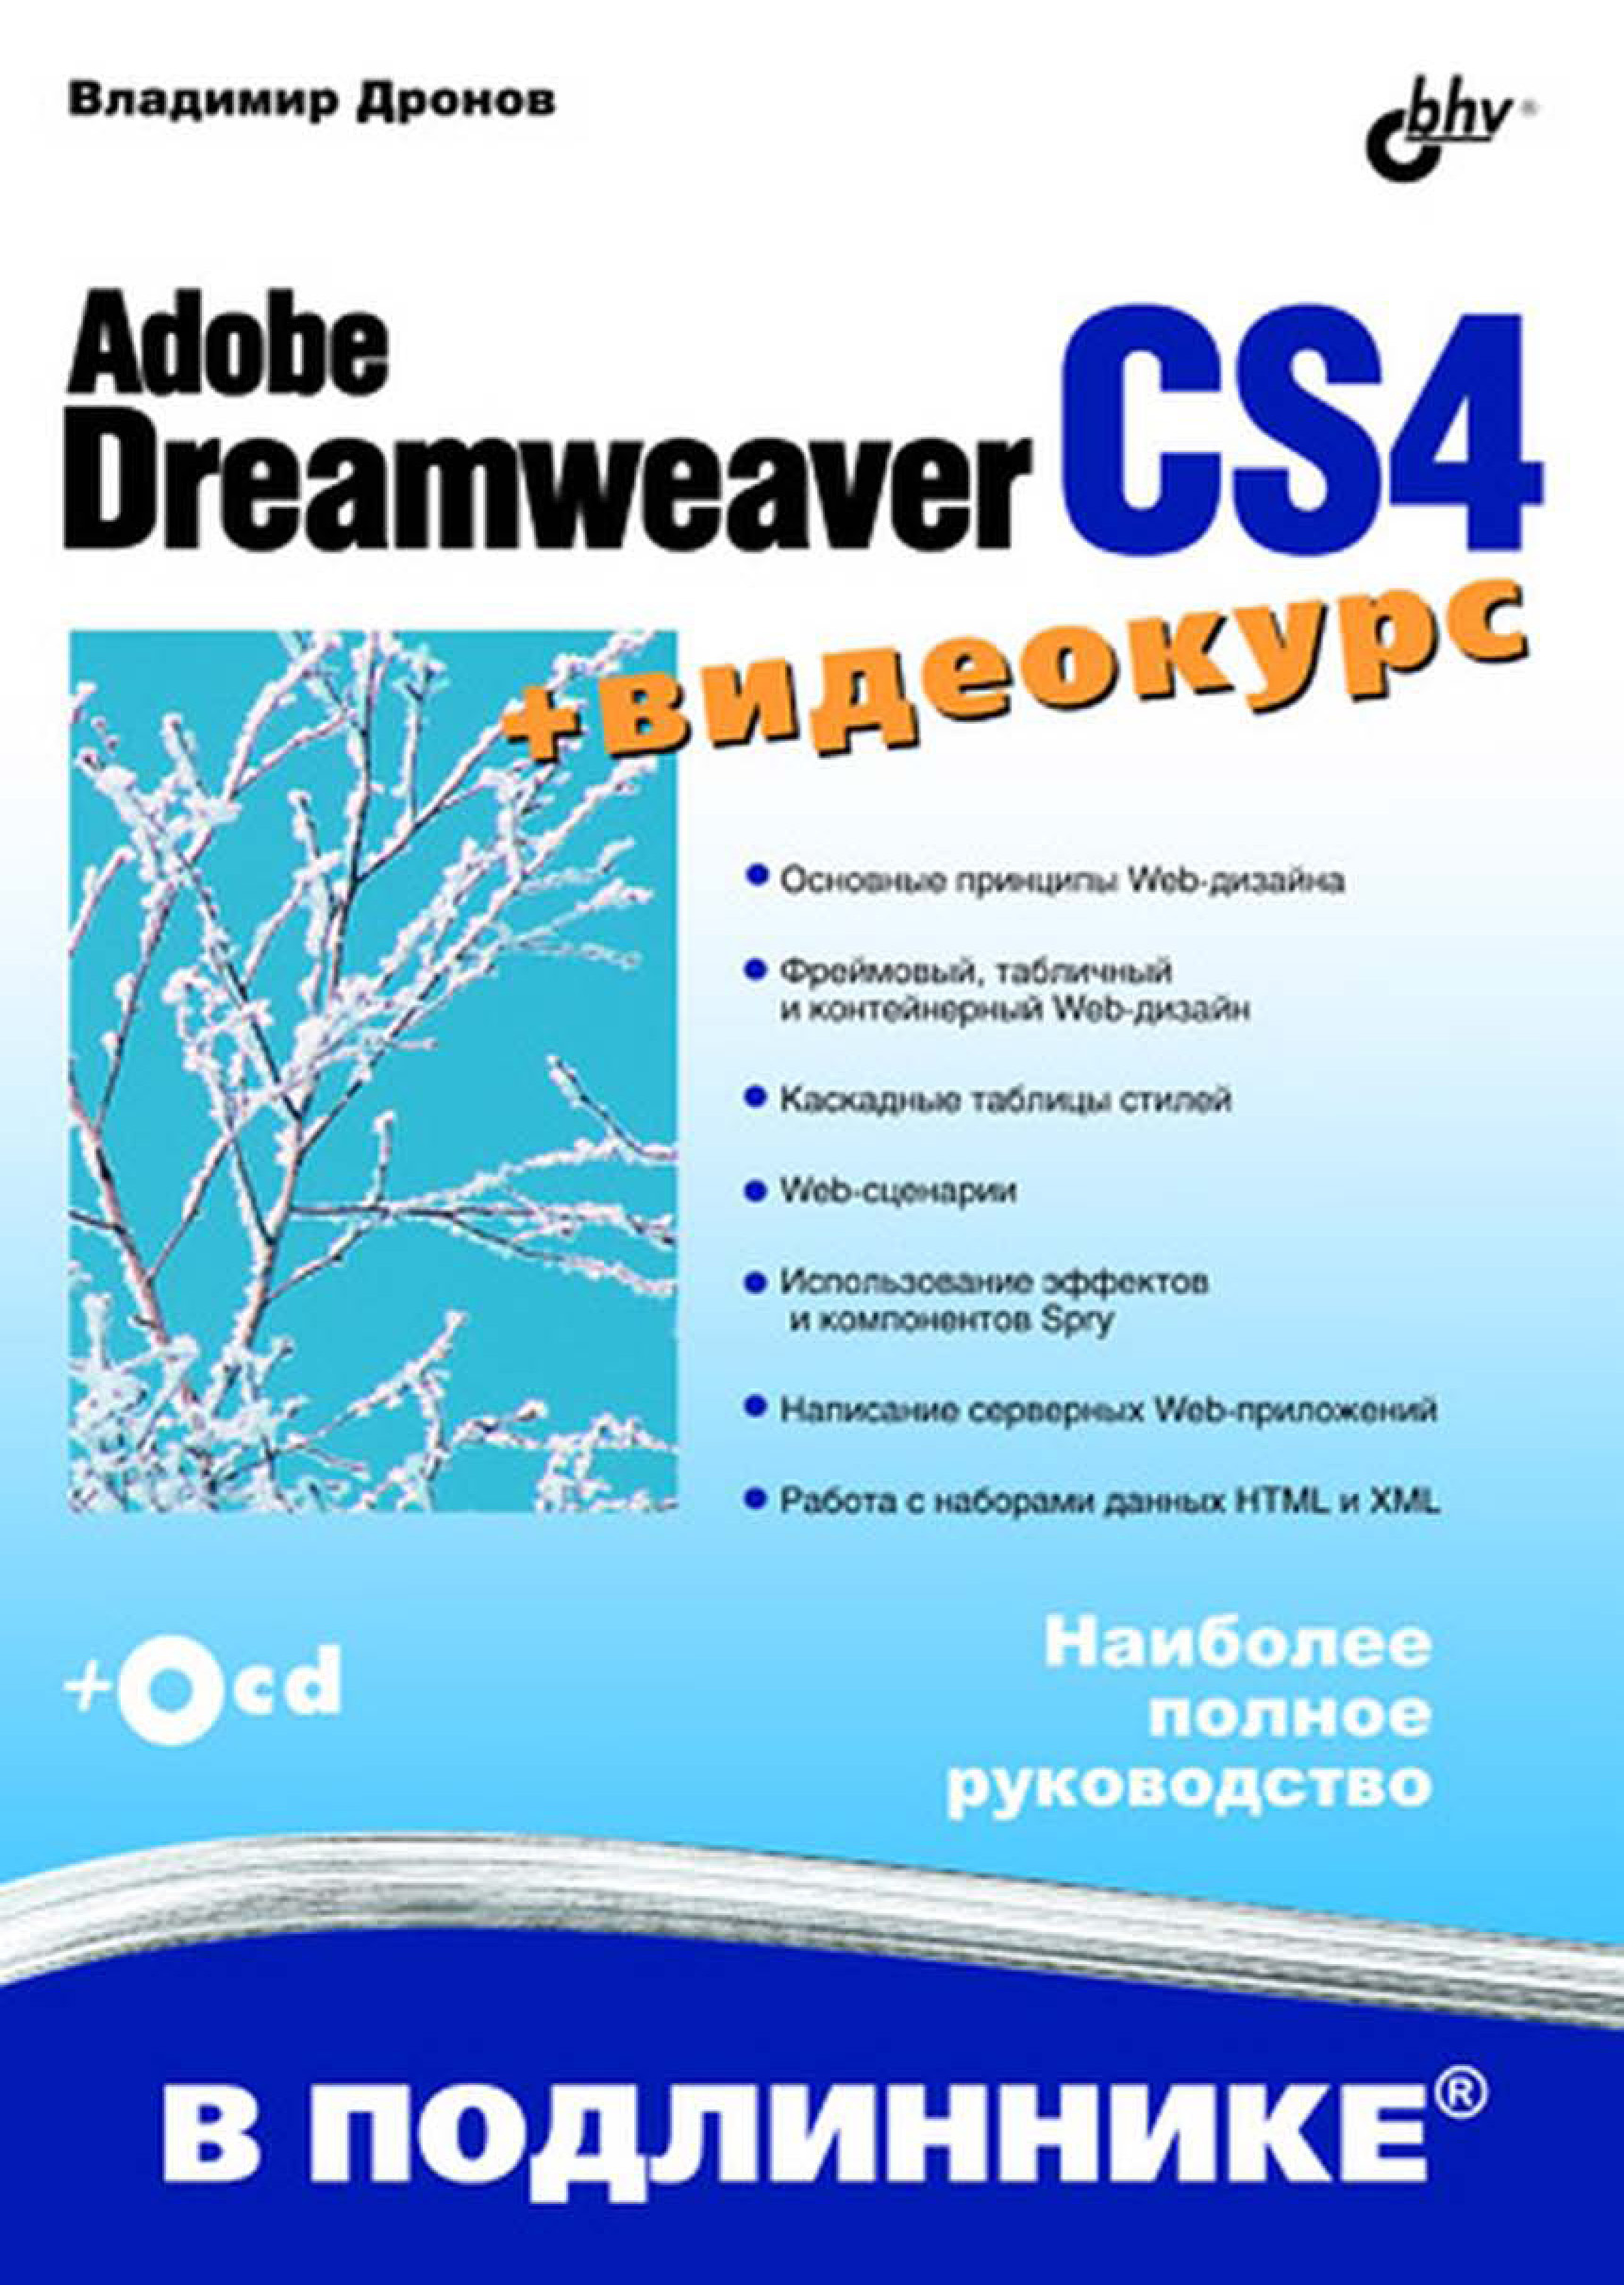 Владимир Дронов Adobe Dreamweaver CS4 владимир дронов javascript в web дизайне